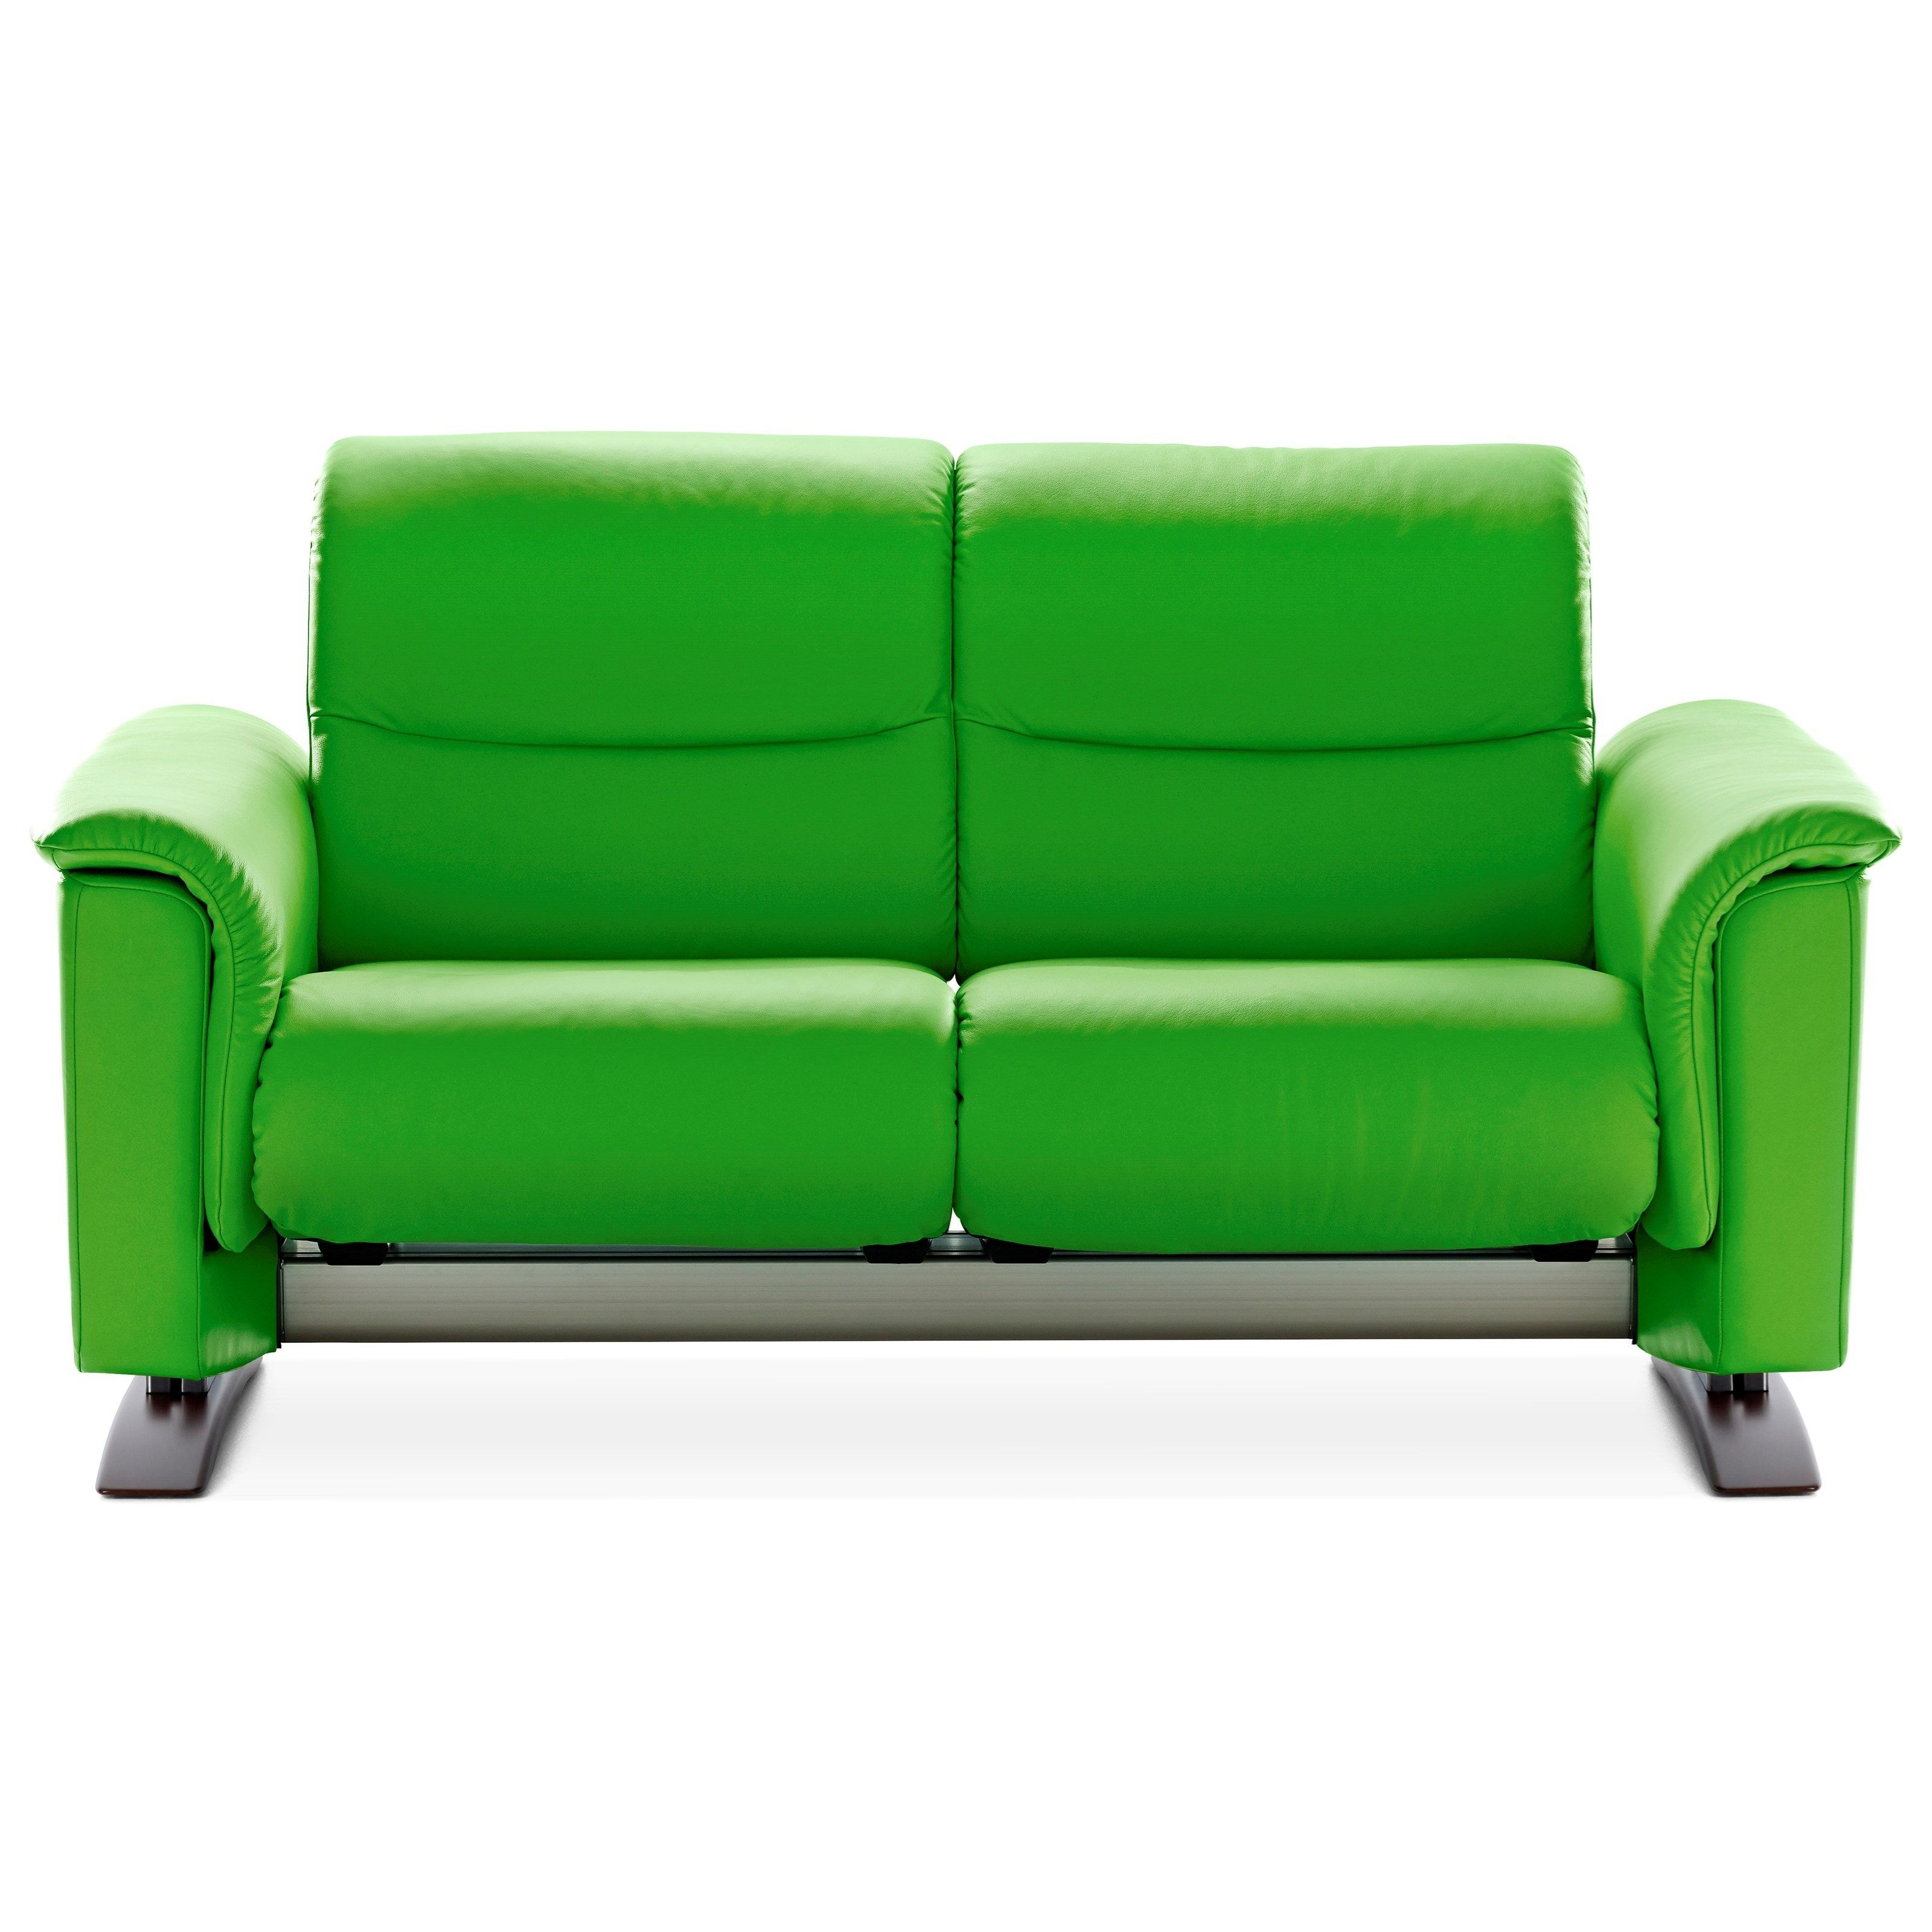 Stressless Panorama 2 Seater Loveseat by Stressless by Ekornes